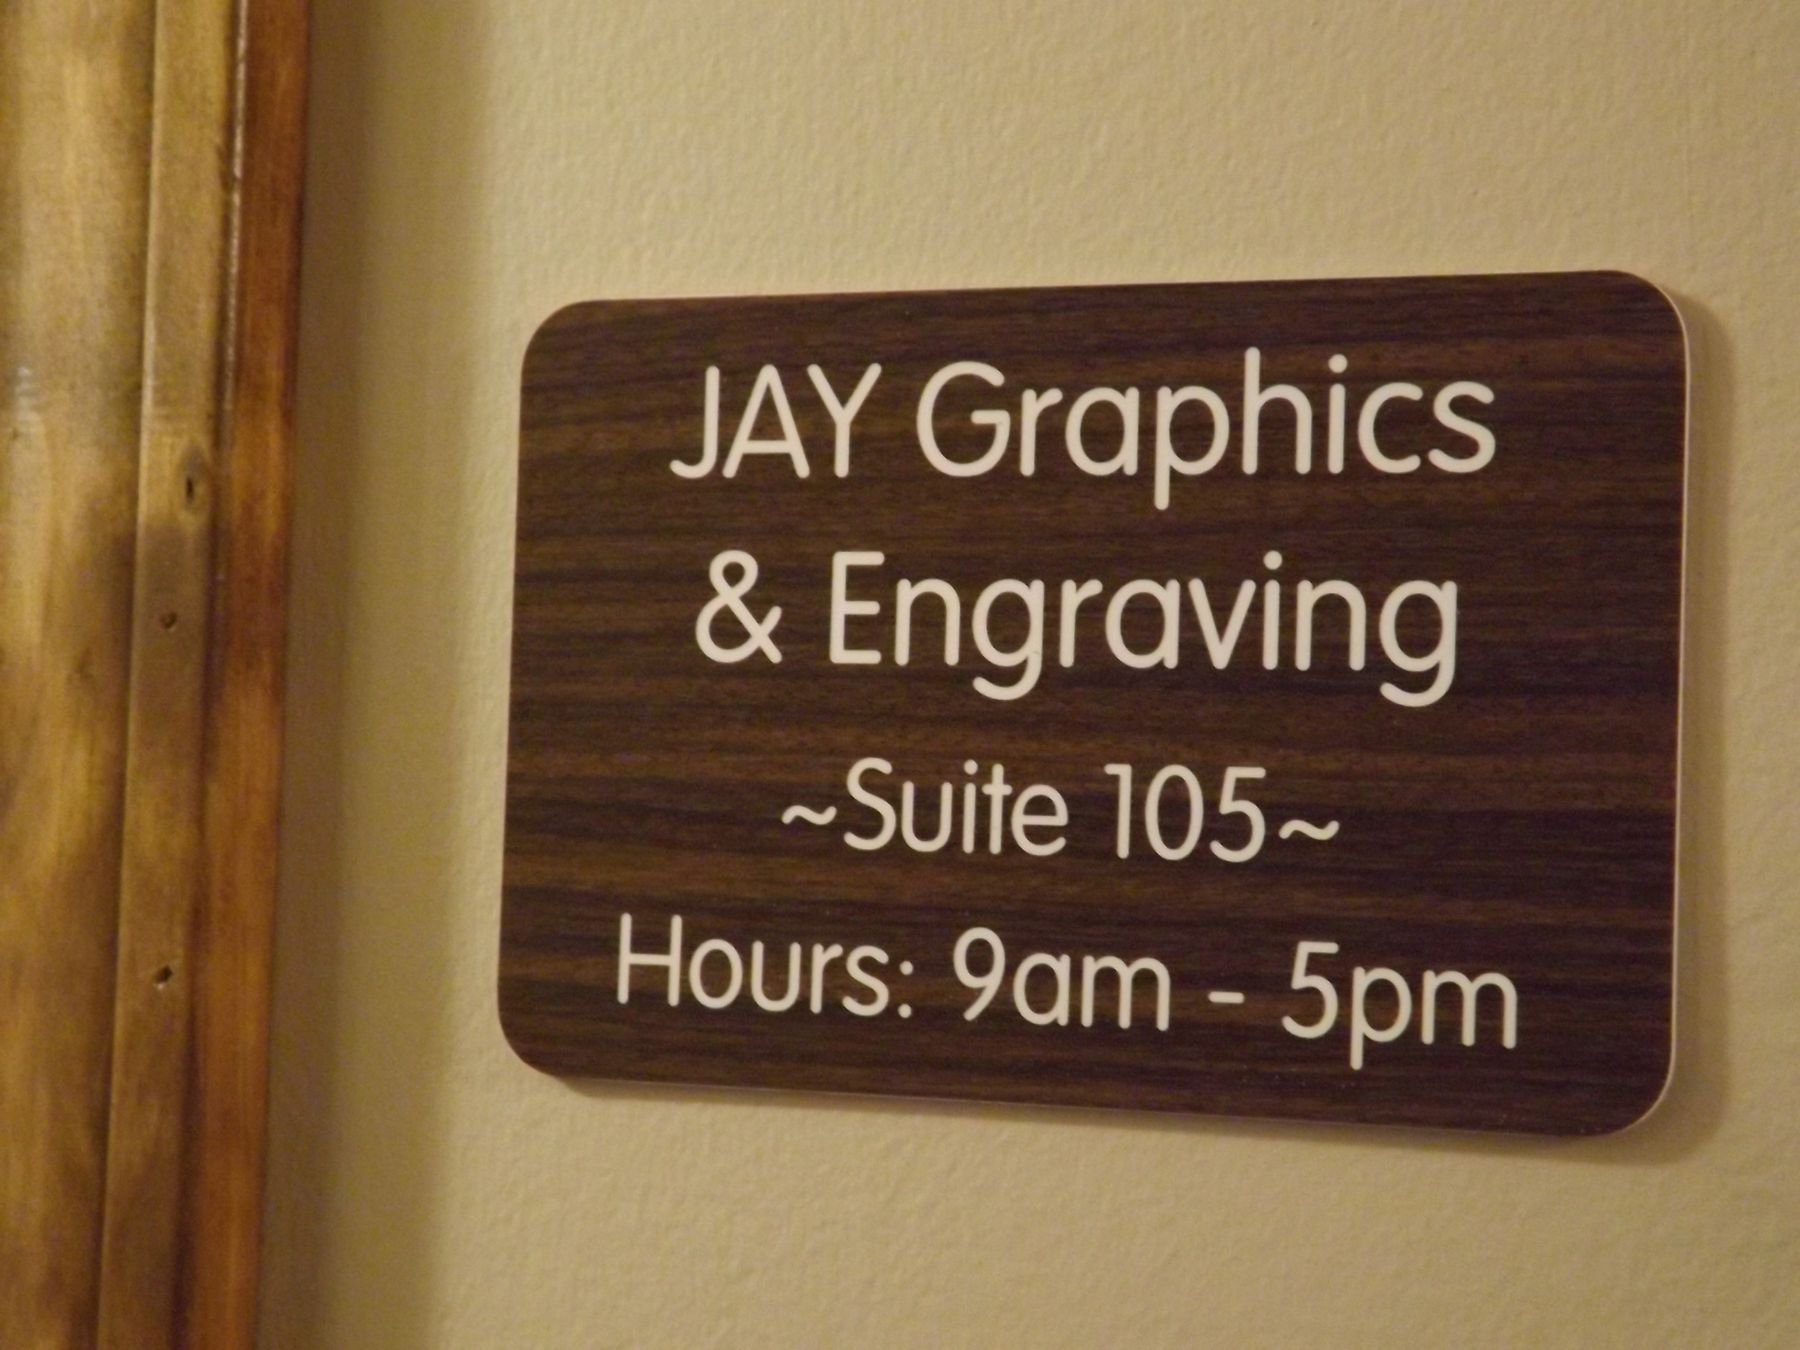 Custom Engraved 4x6 Walnut Wood w/ White Lettering Door Suite Wall Sign | Name Plate | Personalized Wall Plaque | Business Doctor Law Firm Home Office Cafe Shop | Up to 4 Text Lines | Adhesive Backed